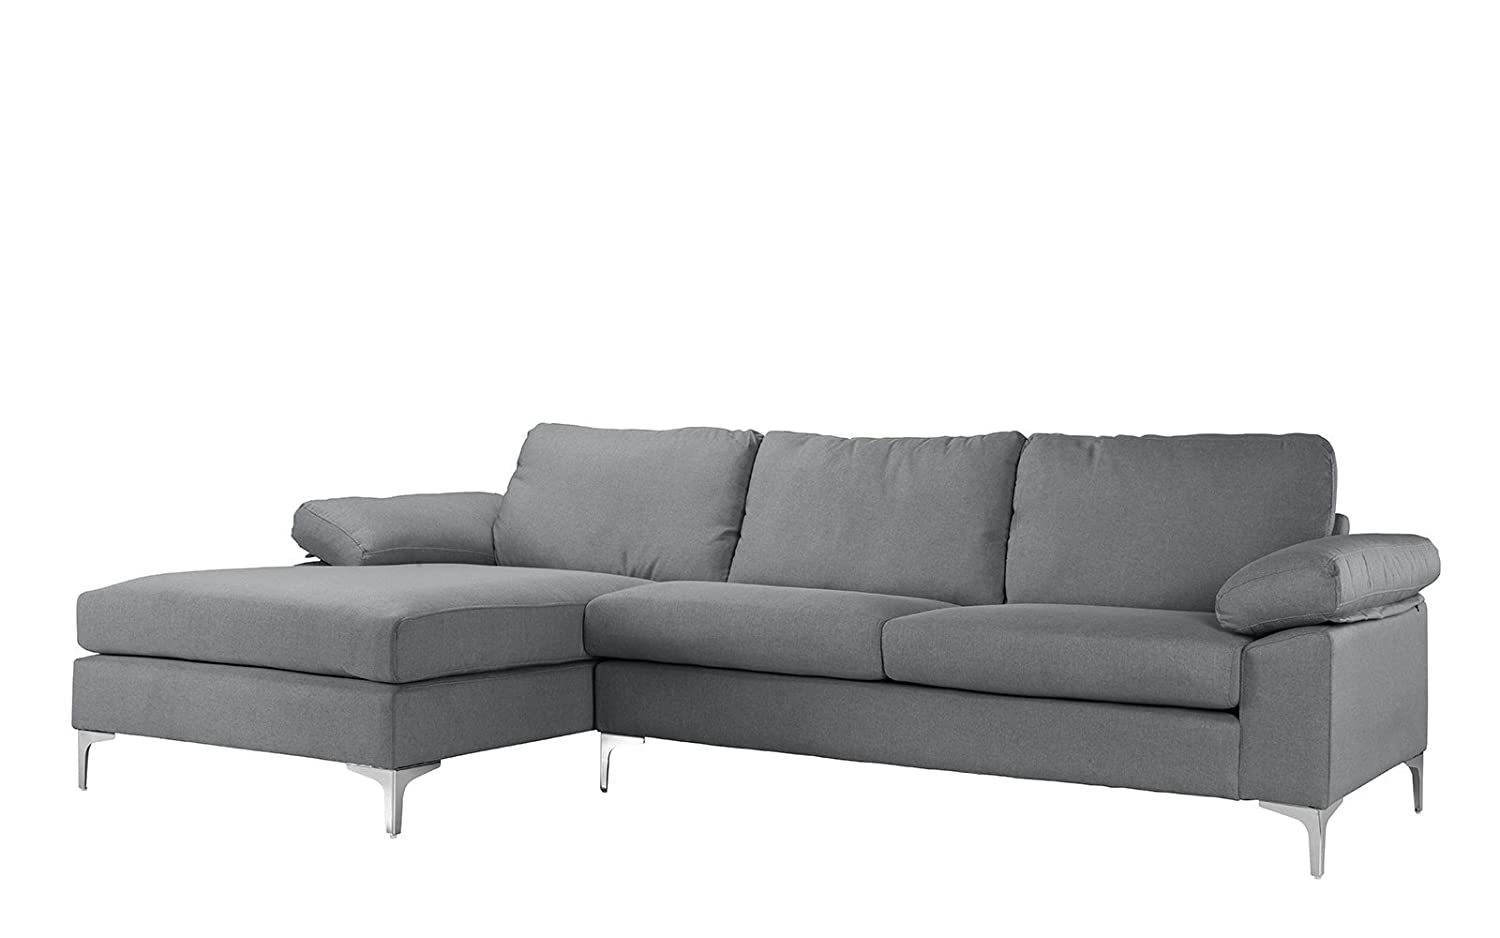 Amazon.com: Modern Large Linen Fabric Sectional Sofa, L Shape Couch With  Extra Wide Chaise Lounge (Light Grey): Kitchen U0026 Dining